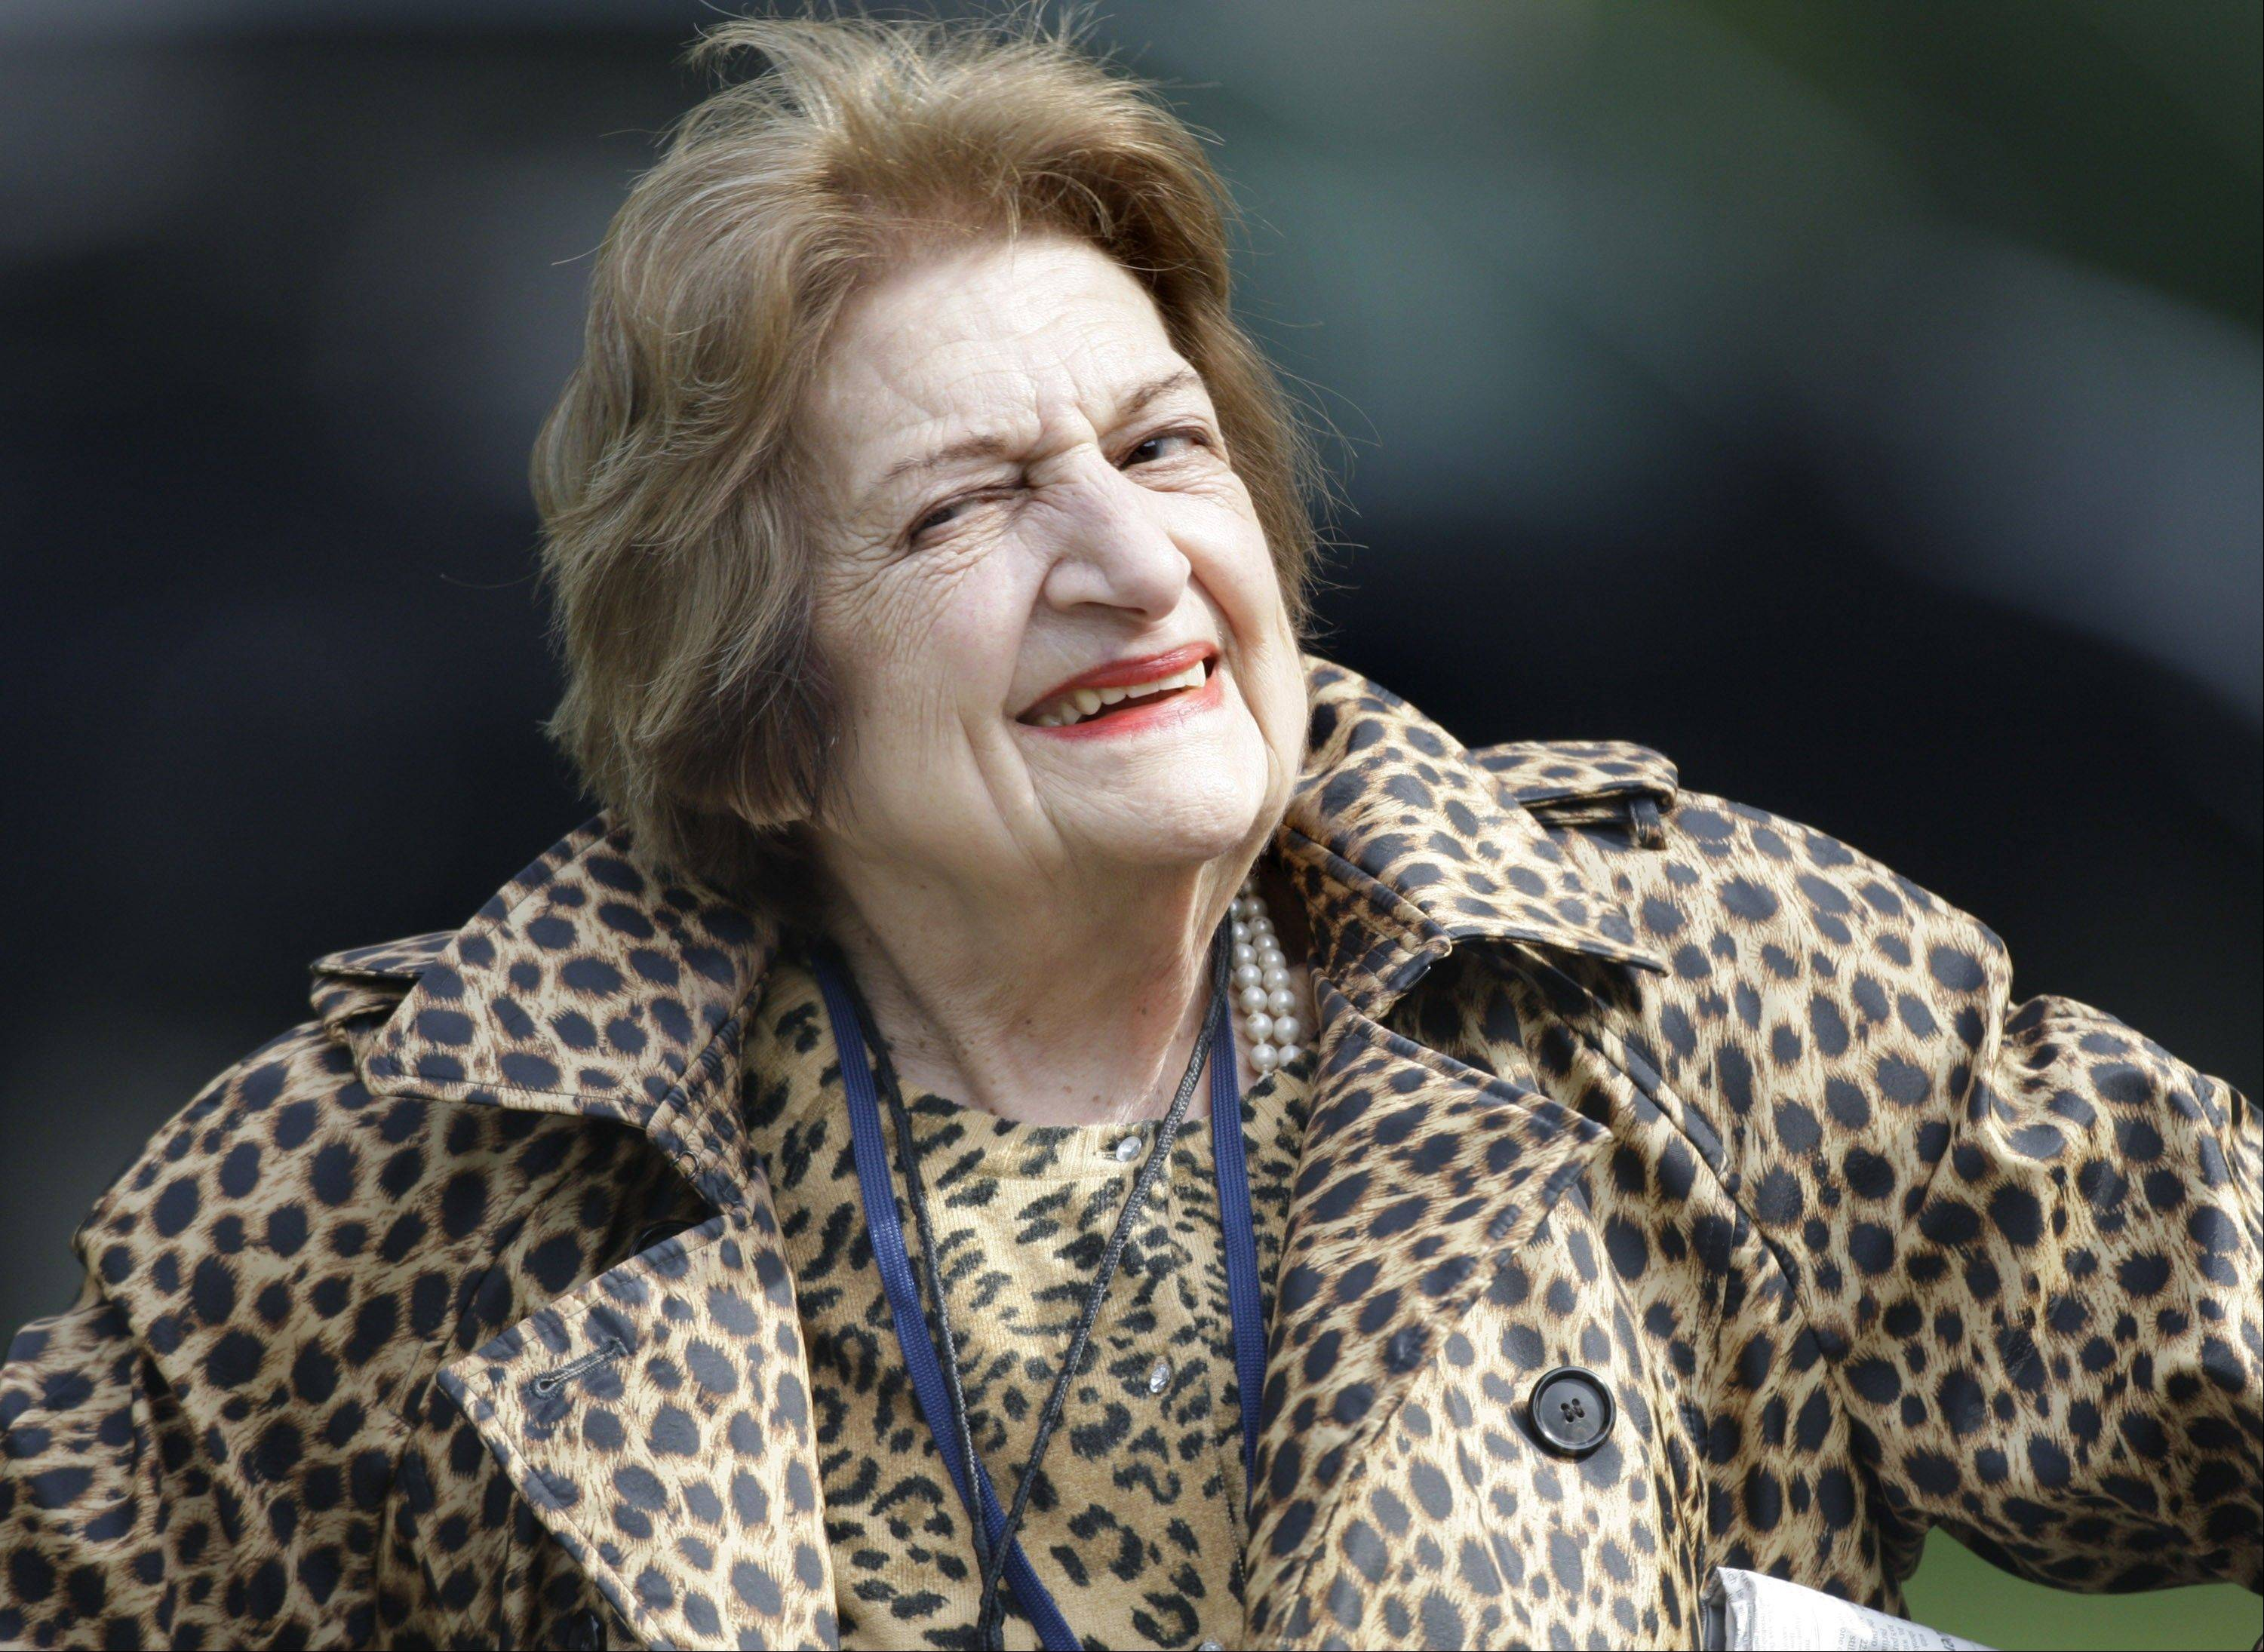 In this Oct. 16, 2007 file photo, veteran White House correspondent Helen Thomas smiles as she leaves the White House after attending a briefing. Thomas, the White House correspondent who used her seat in the front row of history to grill nine presidents, died July 20, 2013. She was 92.